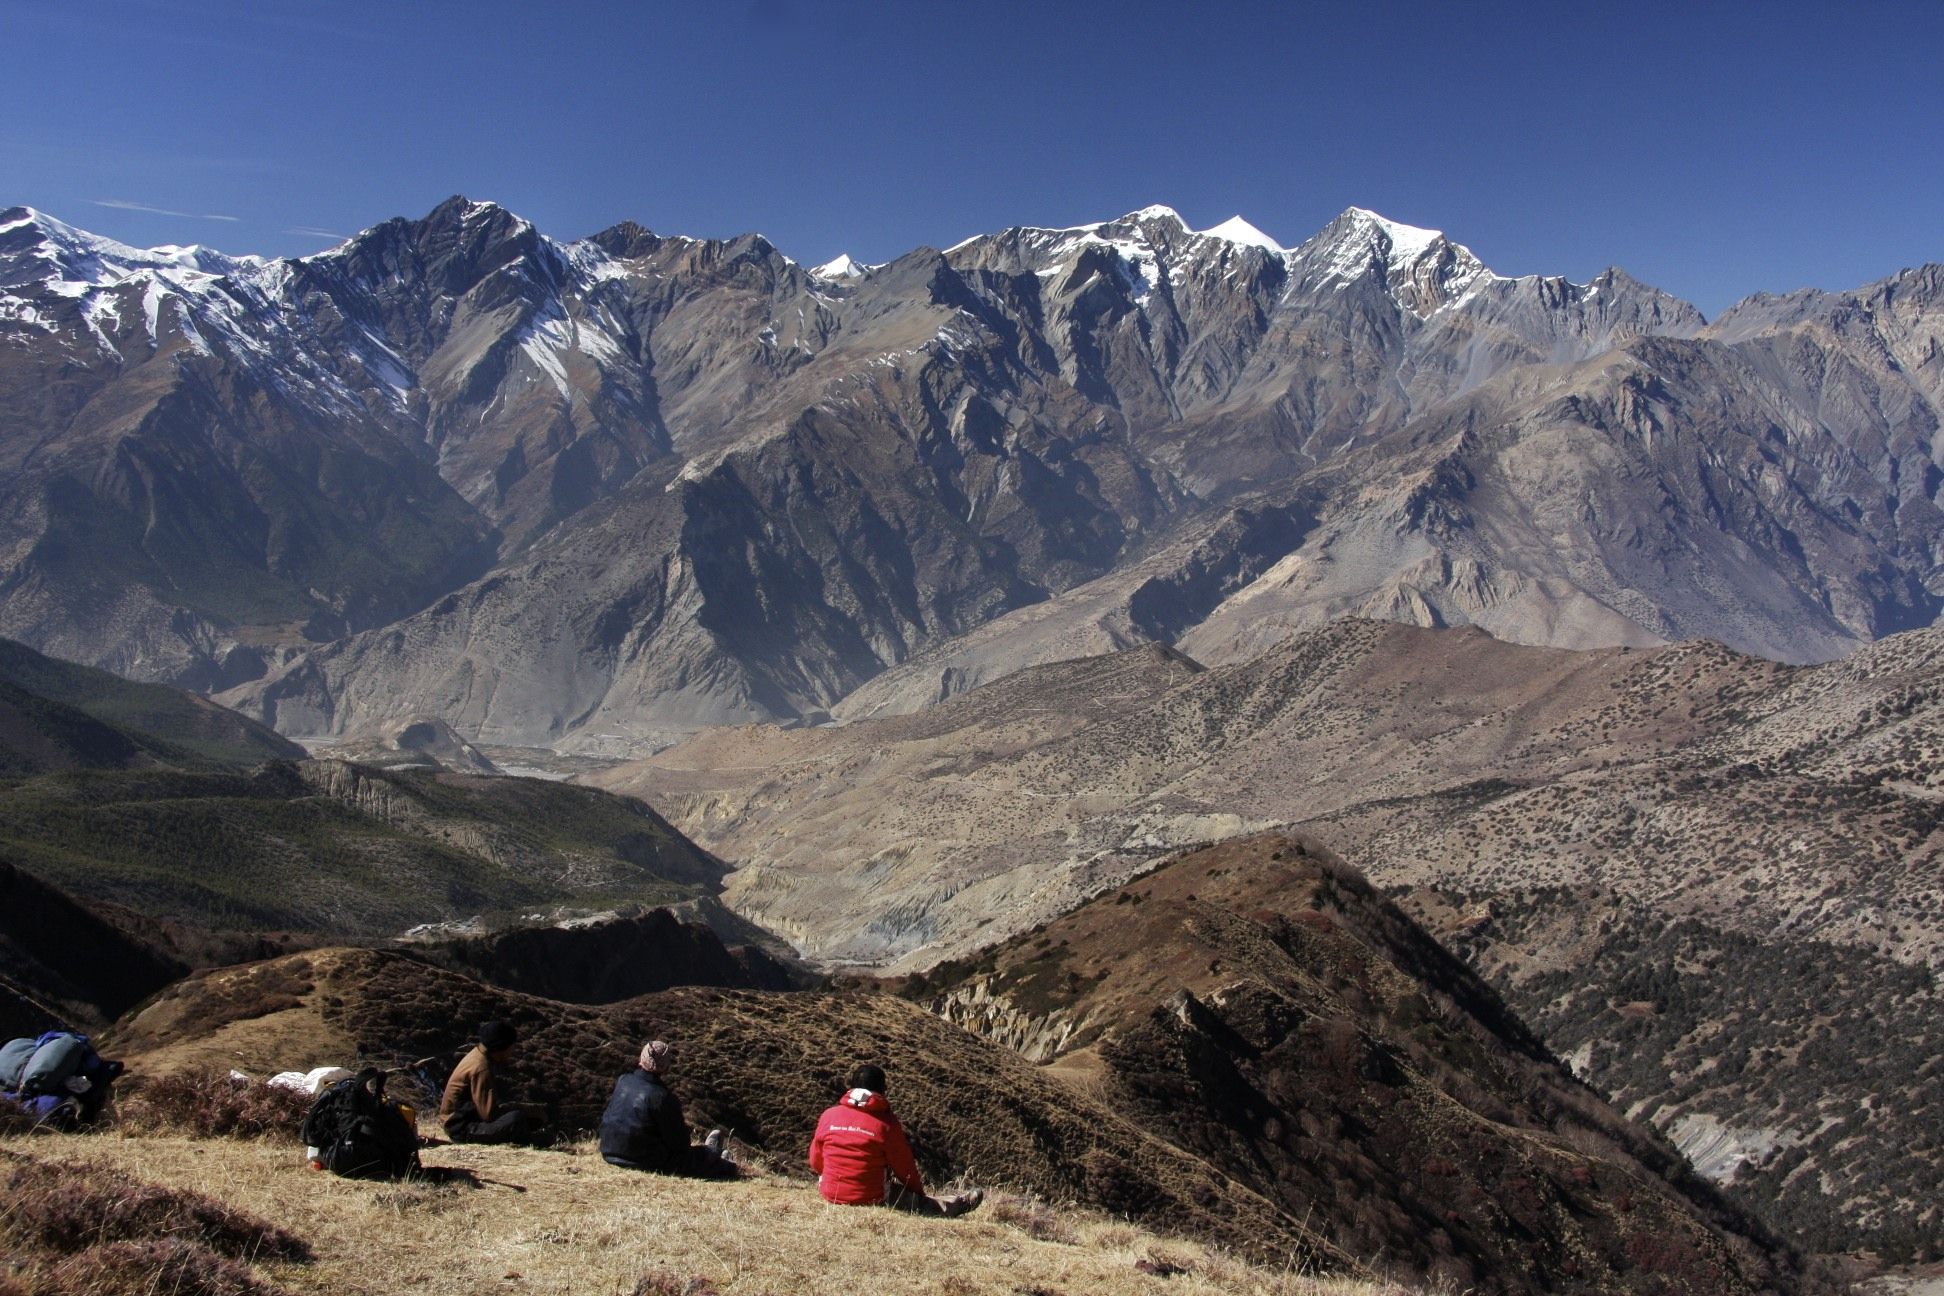 Looking across Kali Gandaki Valley with Jomsom below